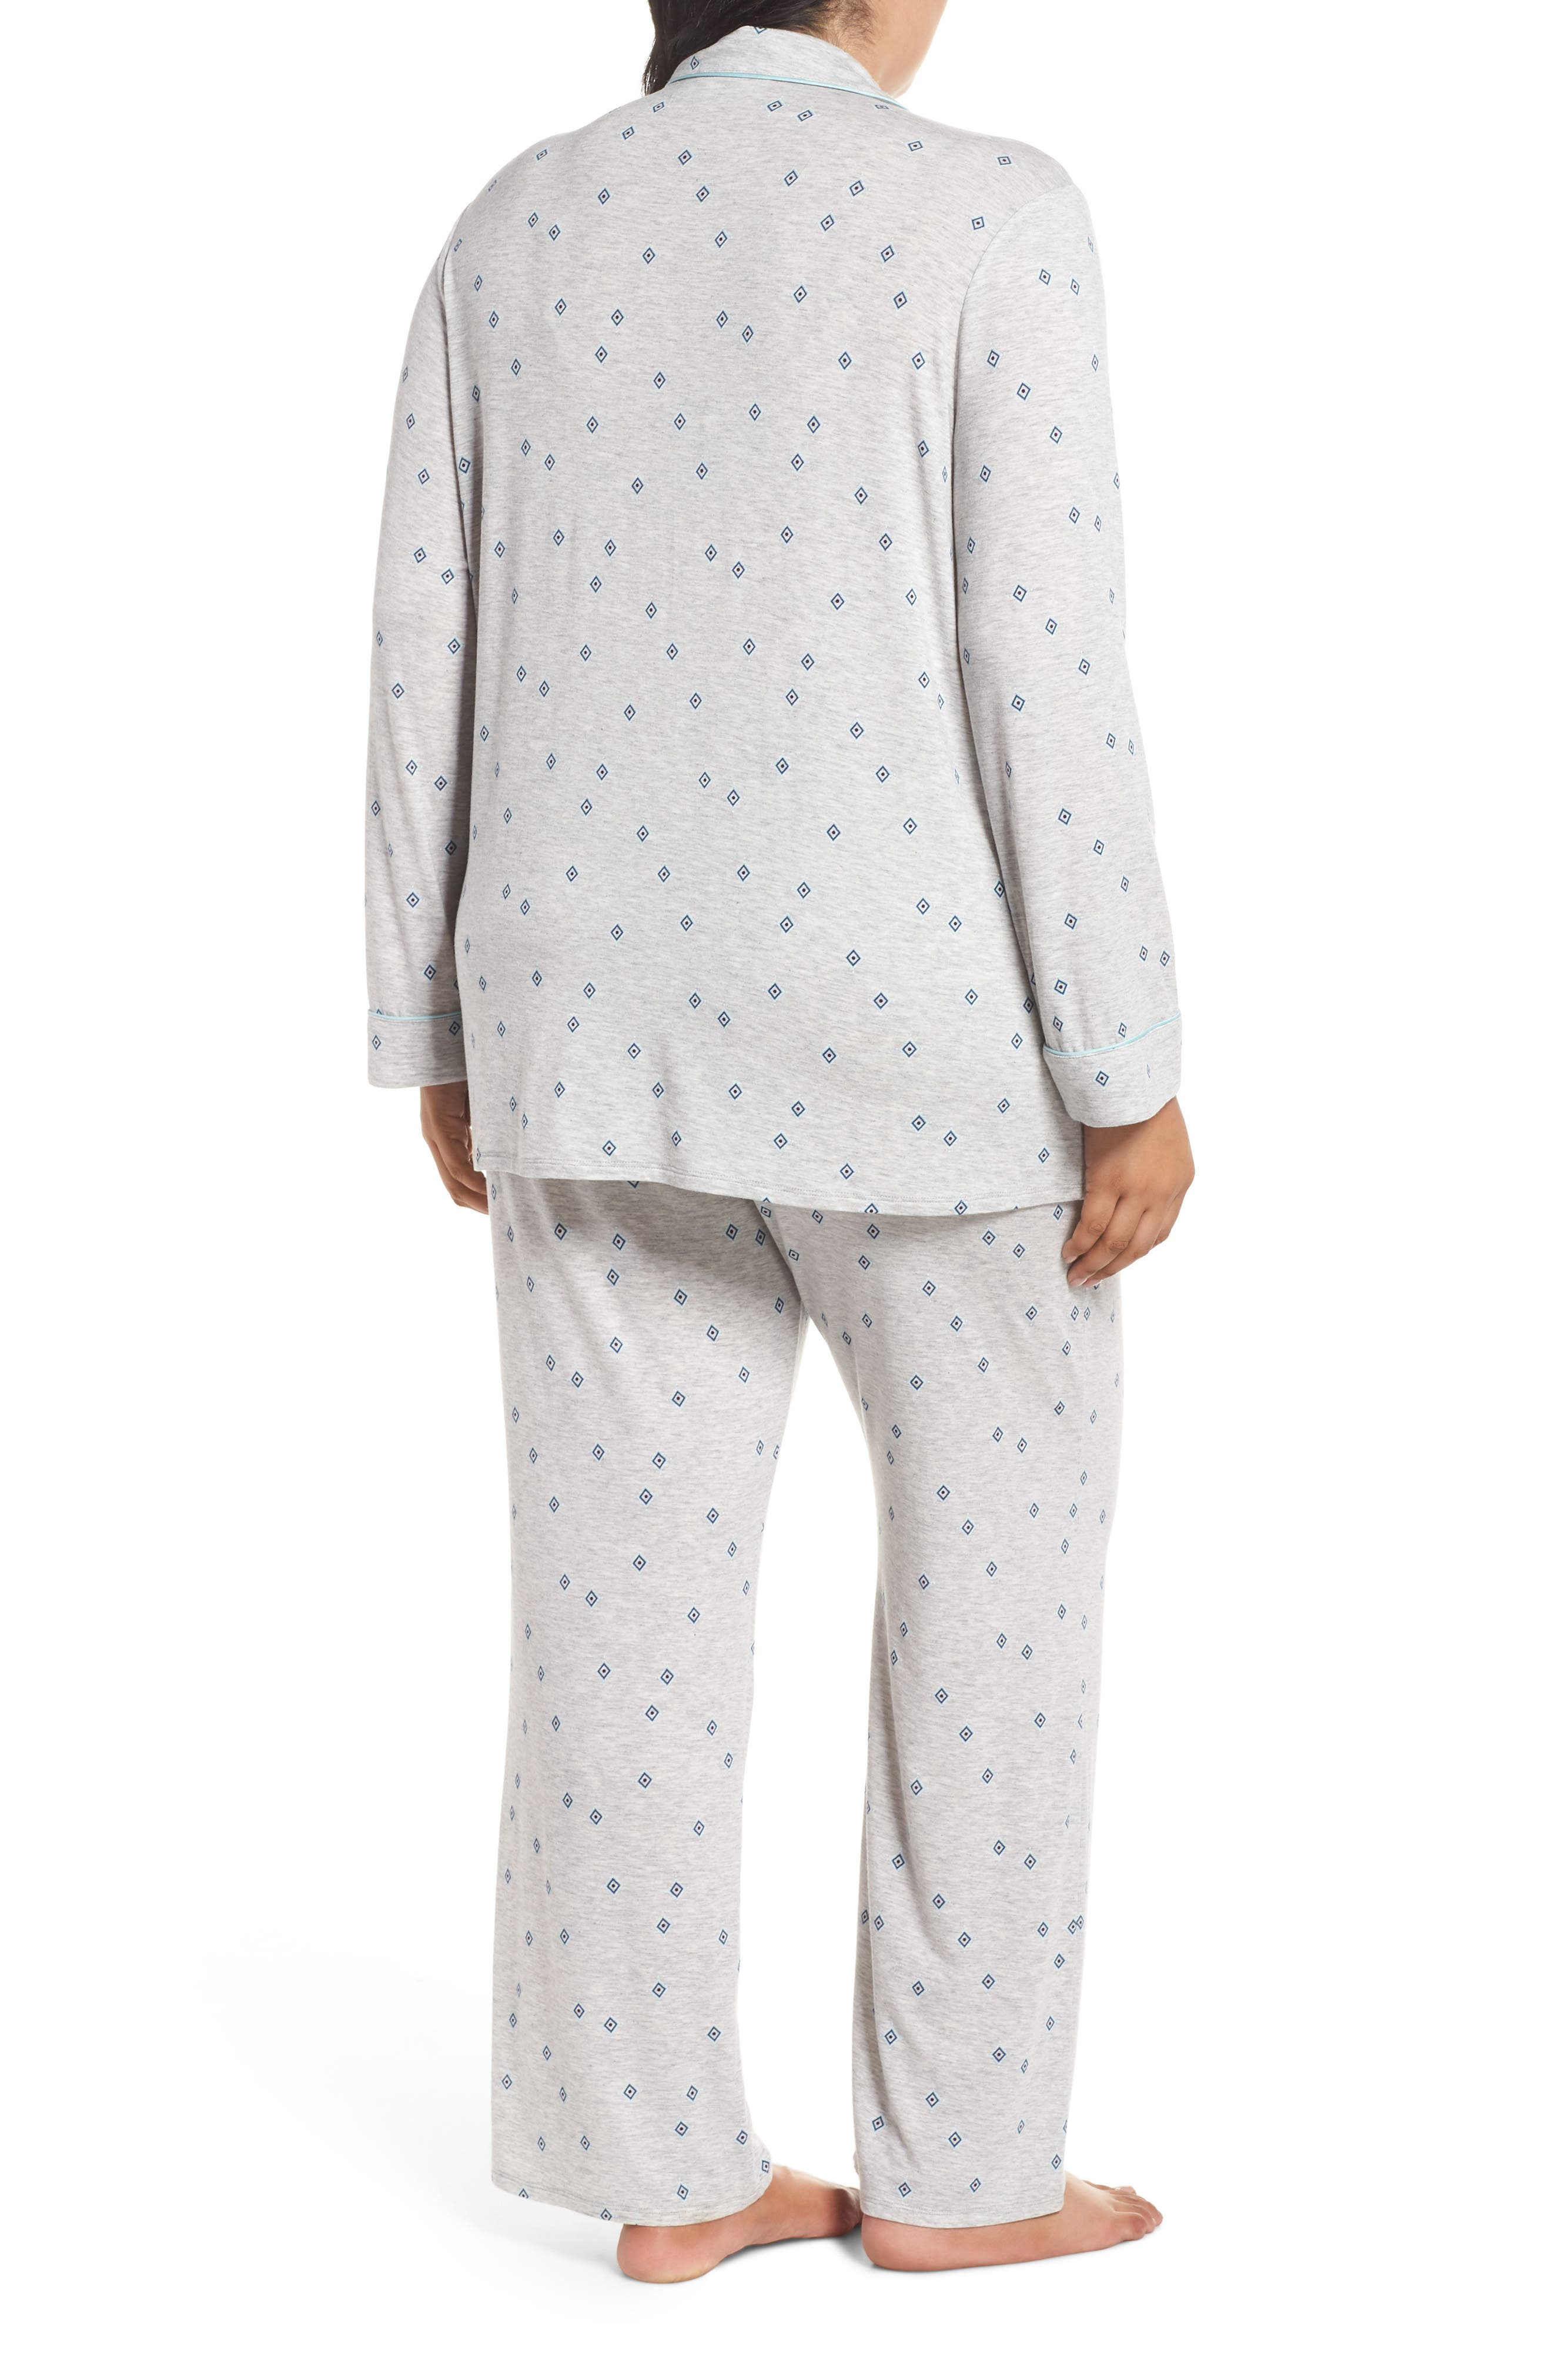 'Moonlight' Pajamas,                             Alternate thumbnail 2, color,                             GREY PEARL HTR FLIRTY FOULARD